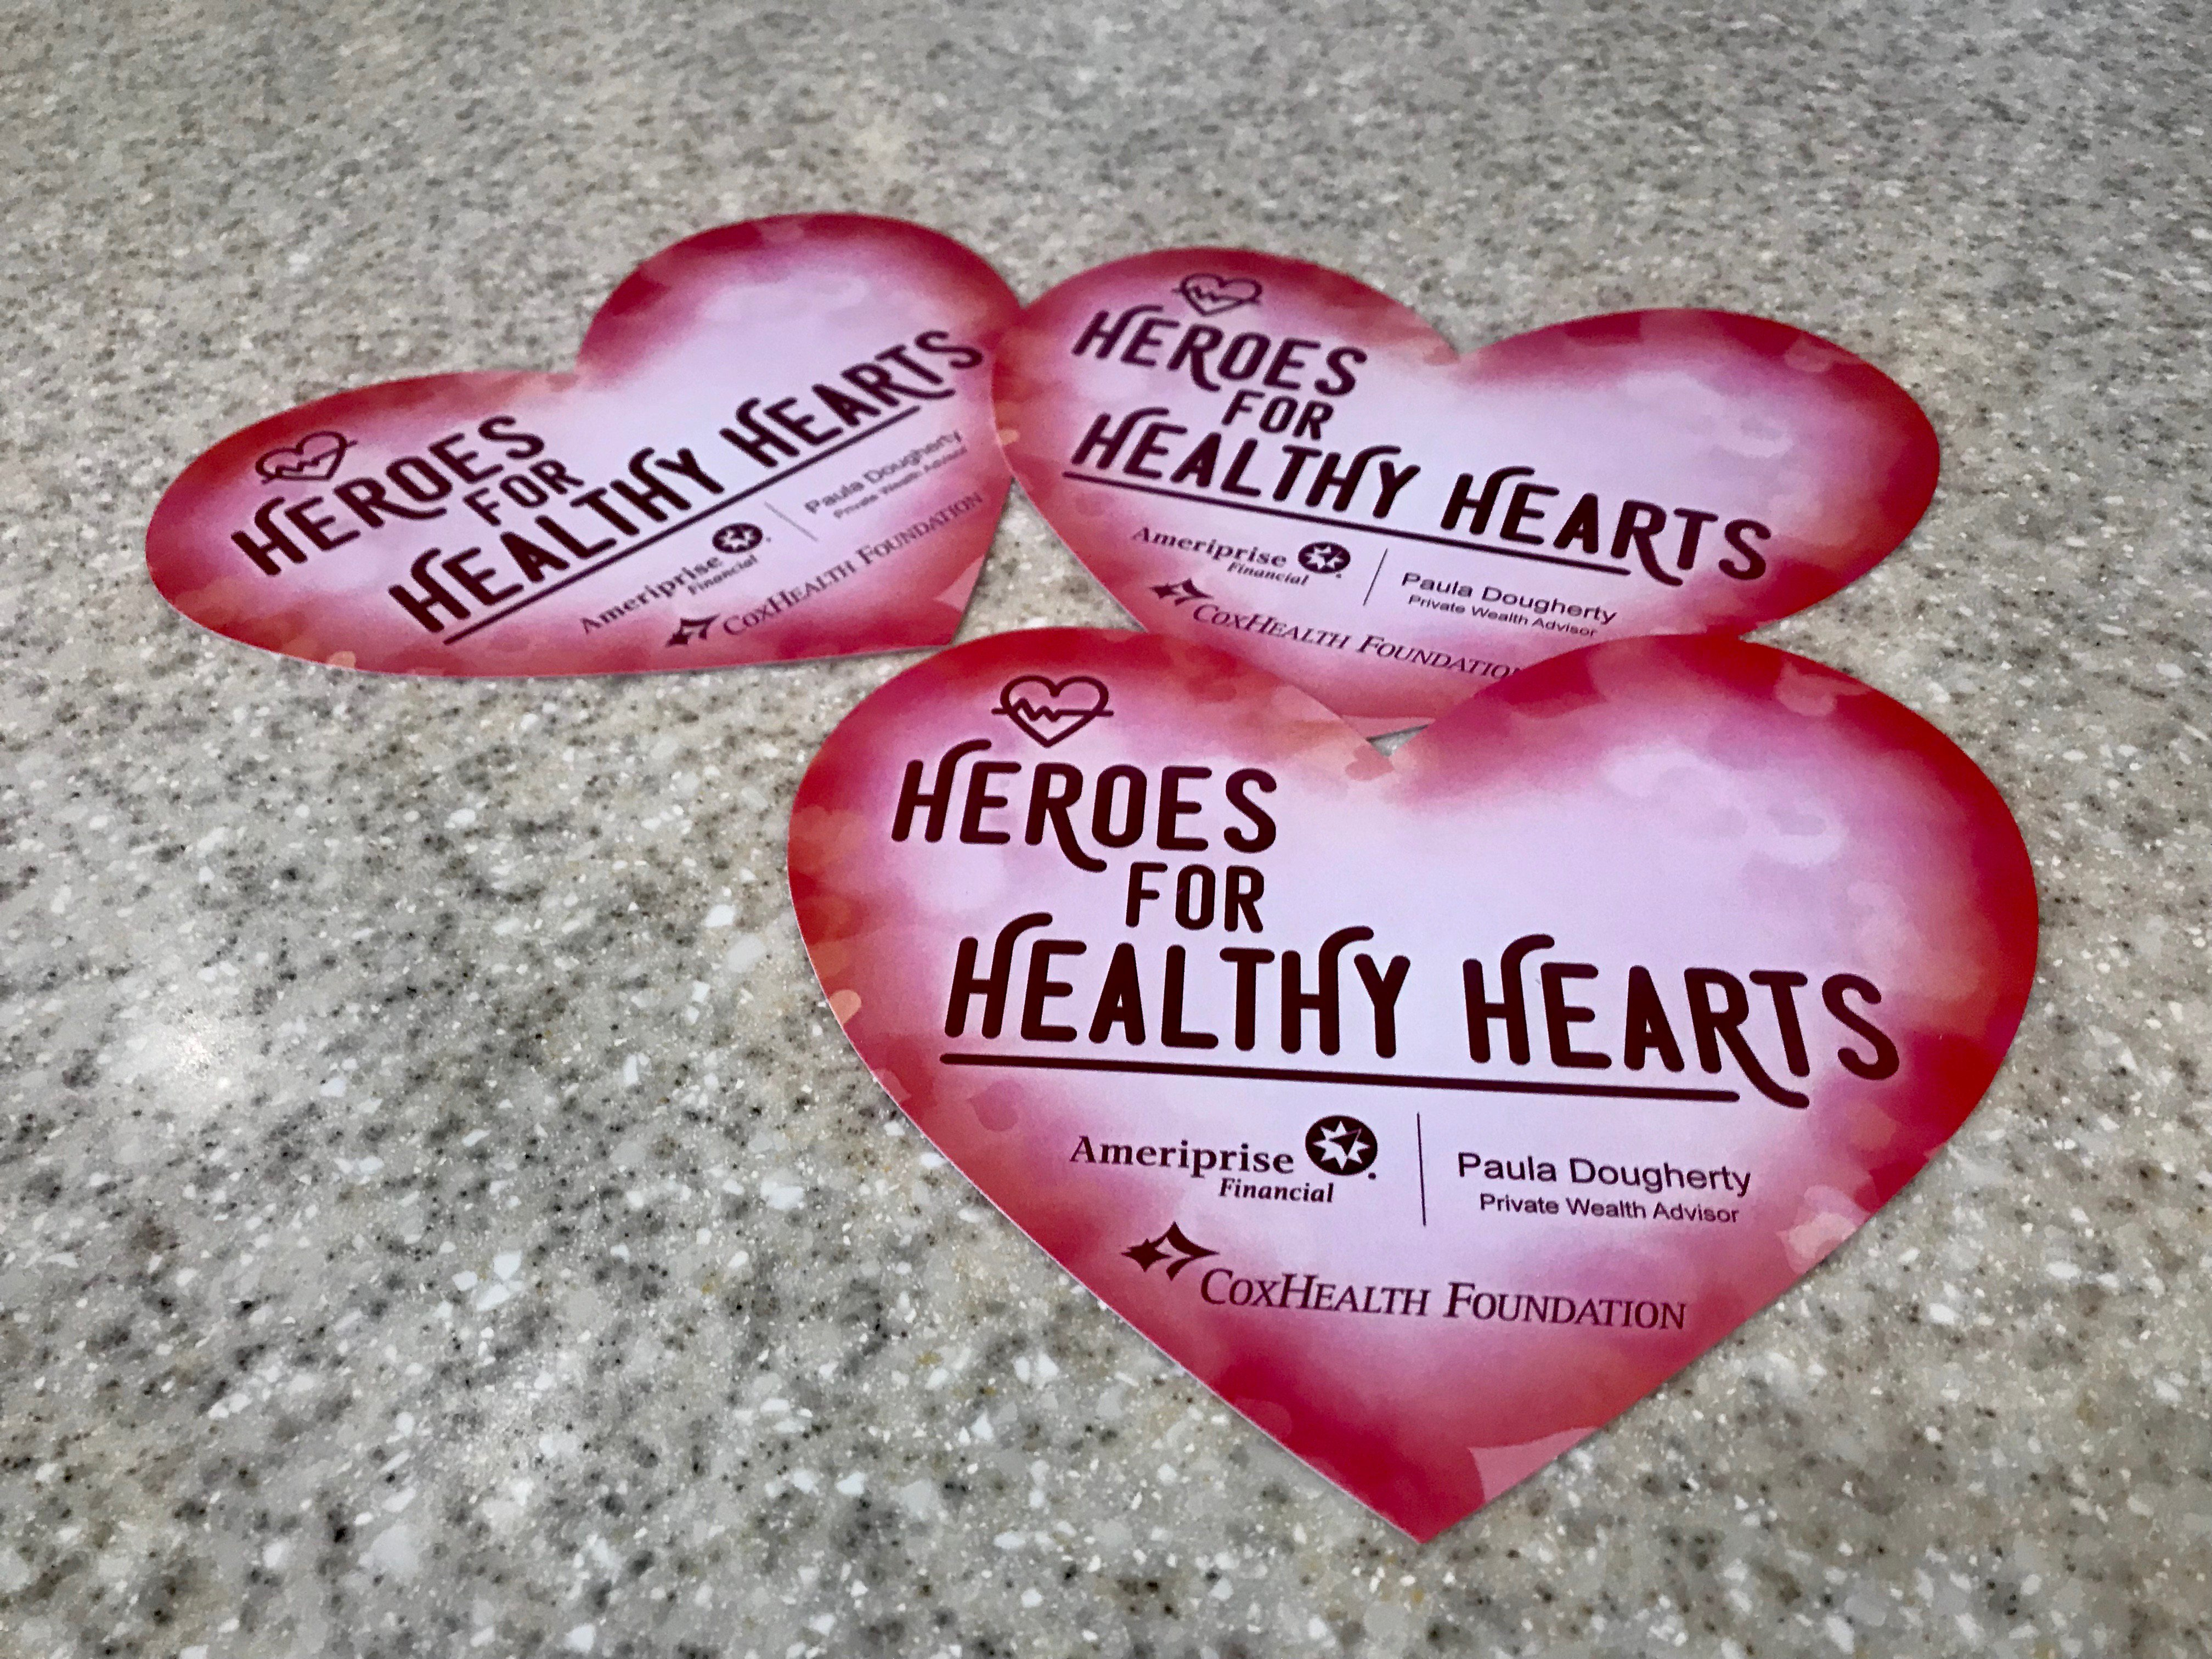 A white logo tells of the new Heroes for Healthy Hearts initiative.